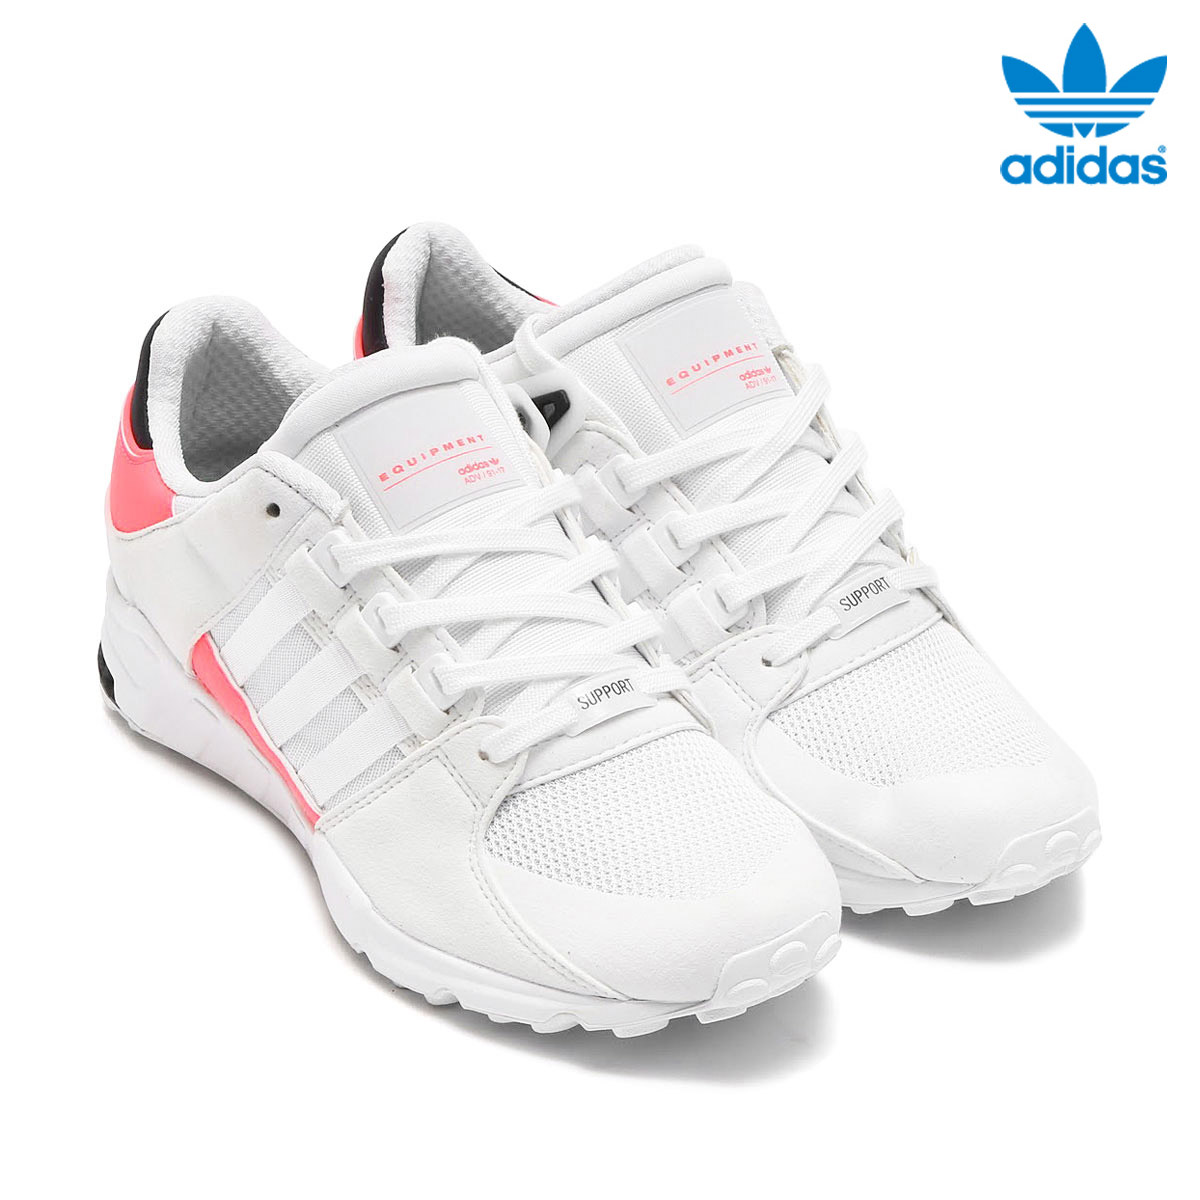 the latest 92b58 8b53a adidas Originals EQT SUPPORT RF (Adidas original Sue ticket men Tosa port)  (Running White/Running White/Turbo) 17SS-I